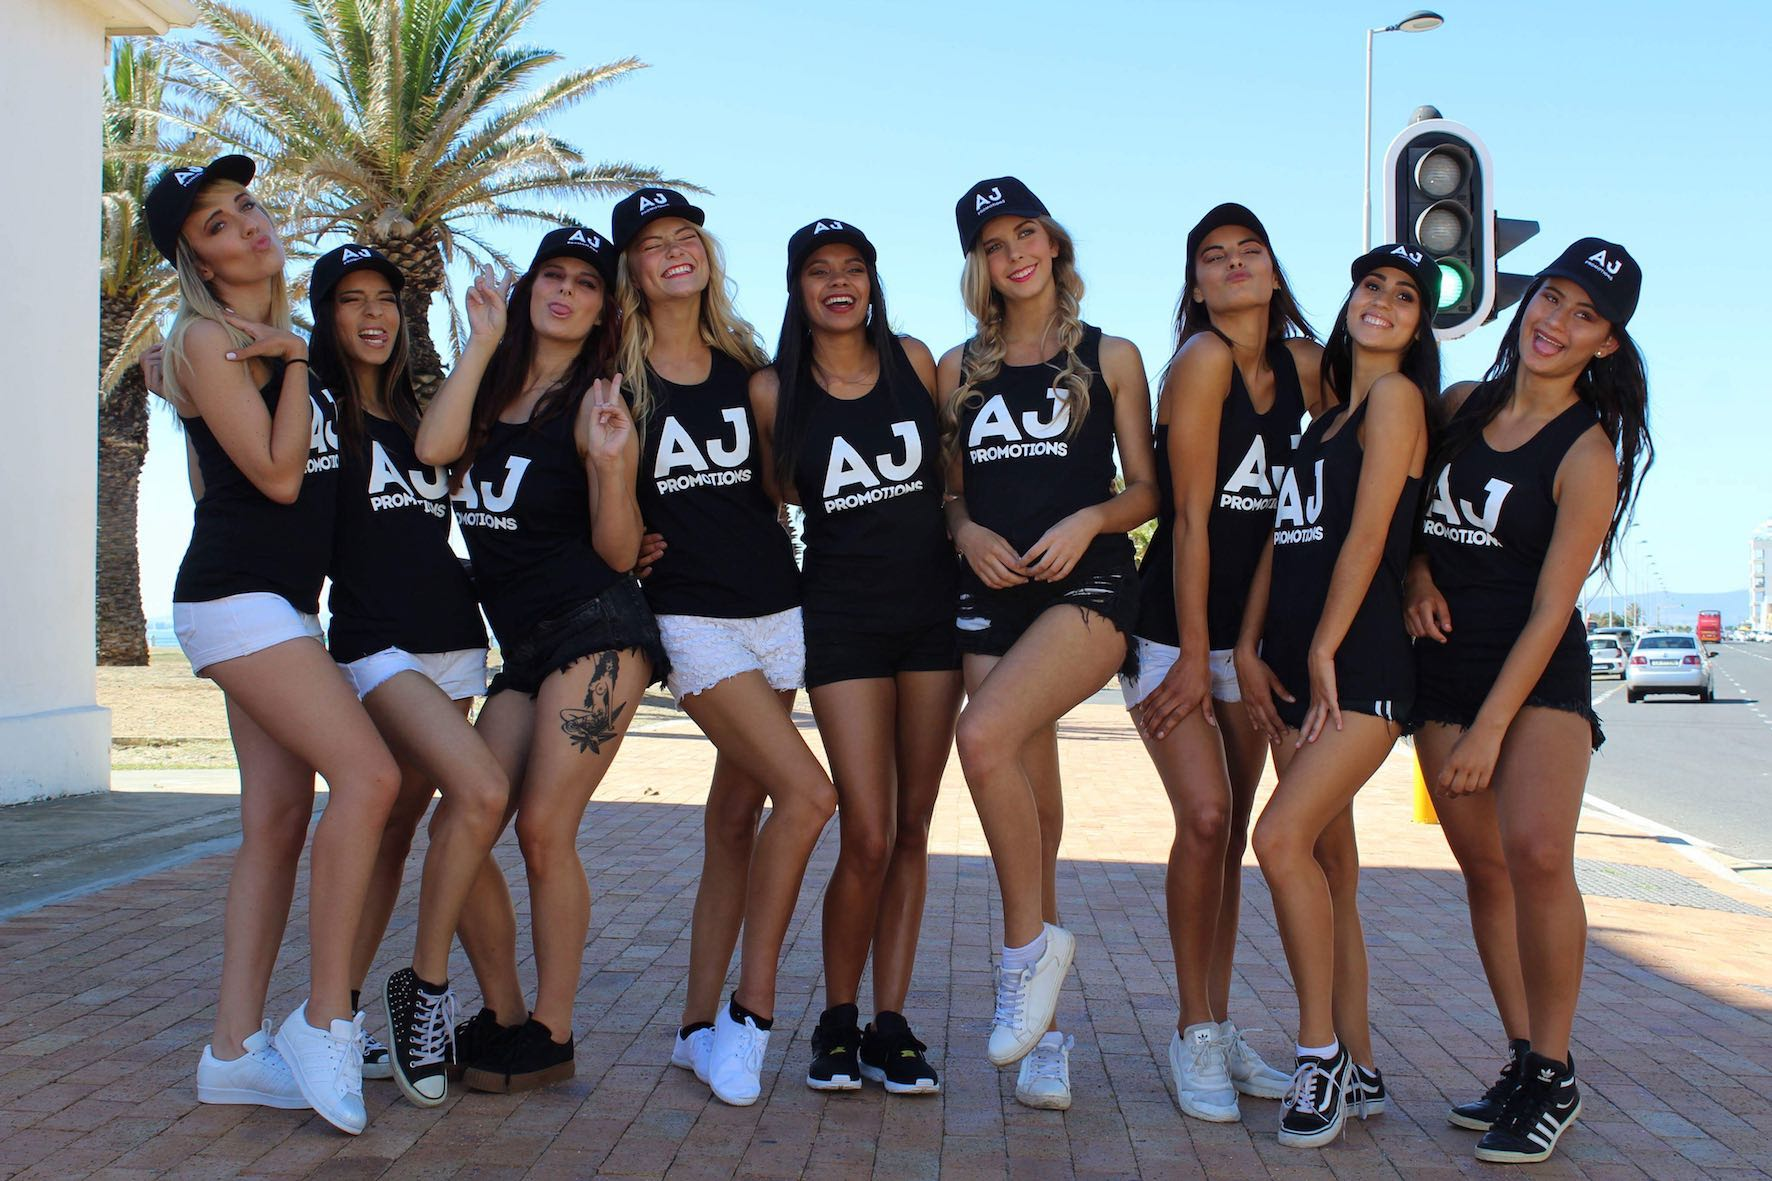 Details for the 2018 AJ Promotions Model Search